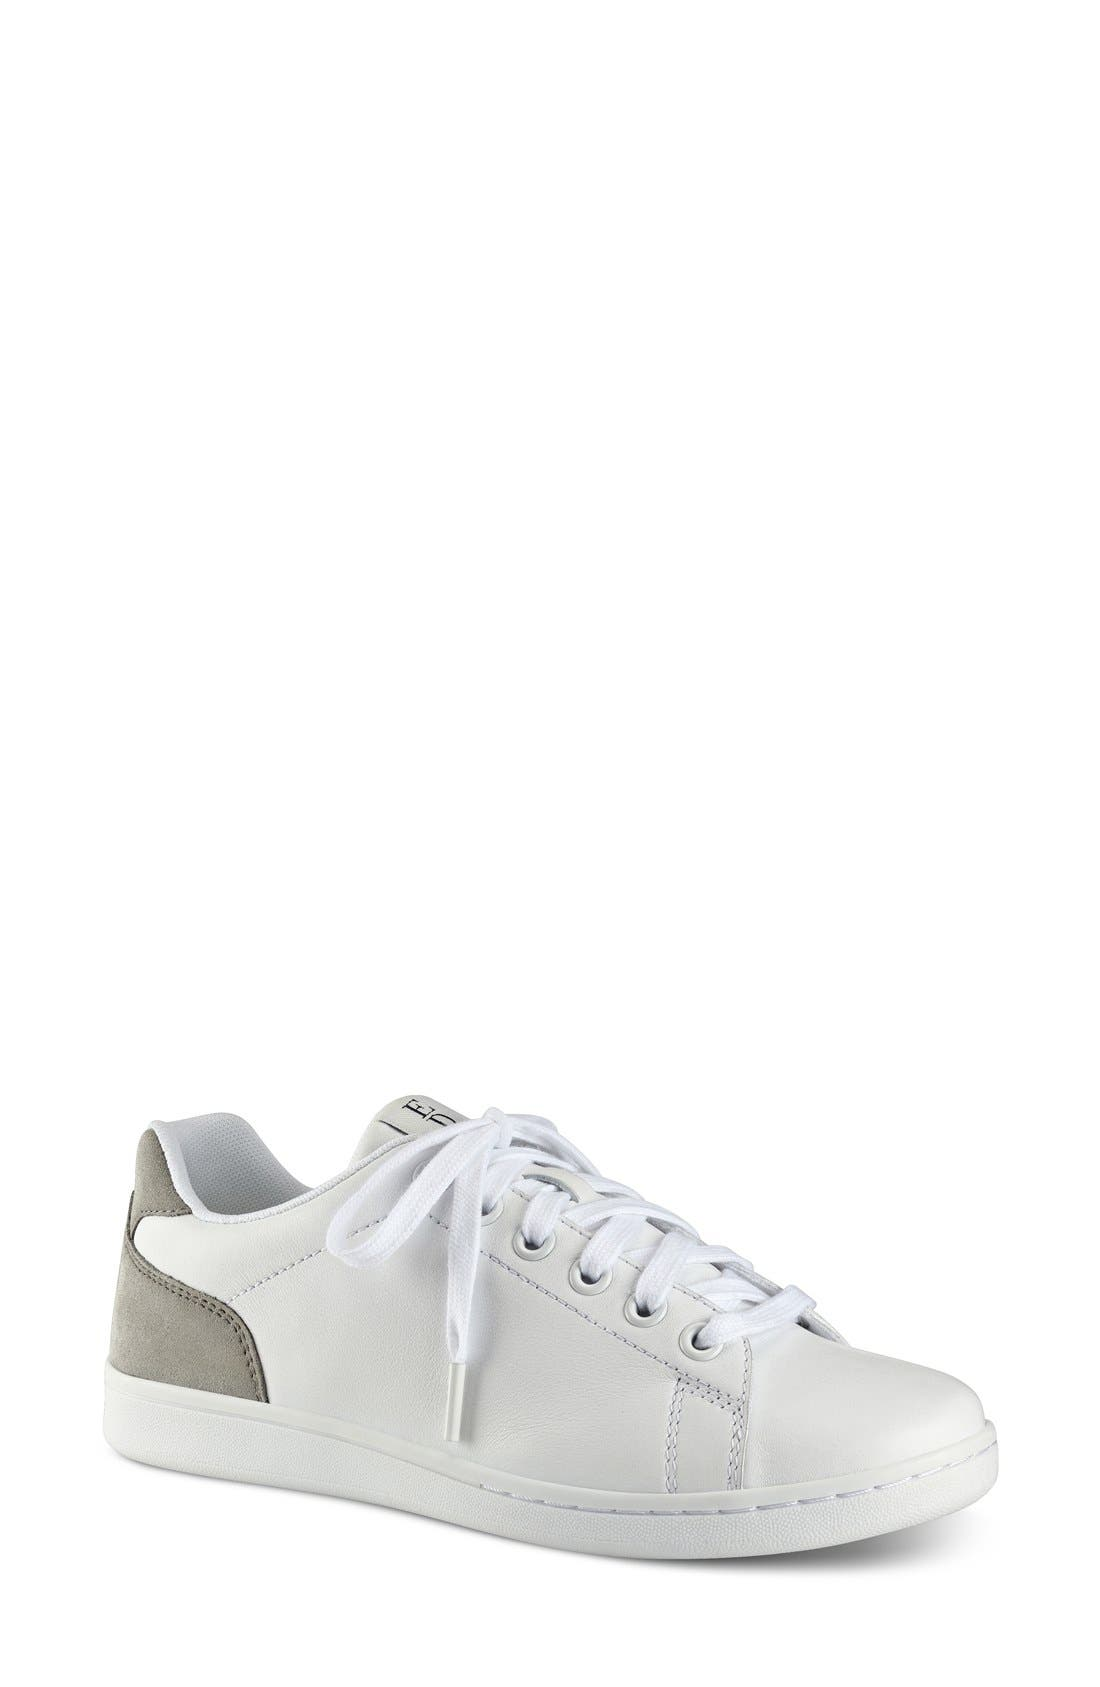 'Chapala' Sneaker,                         Main,                         color, PURE WHITE LEATHER/ STEEL GREY